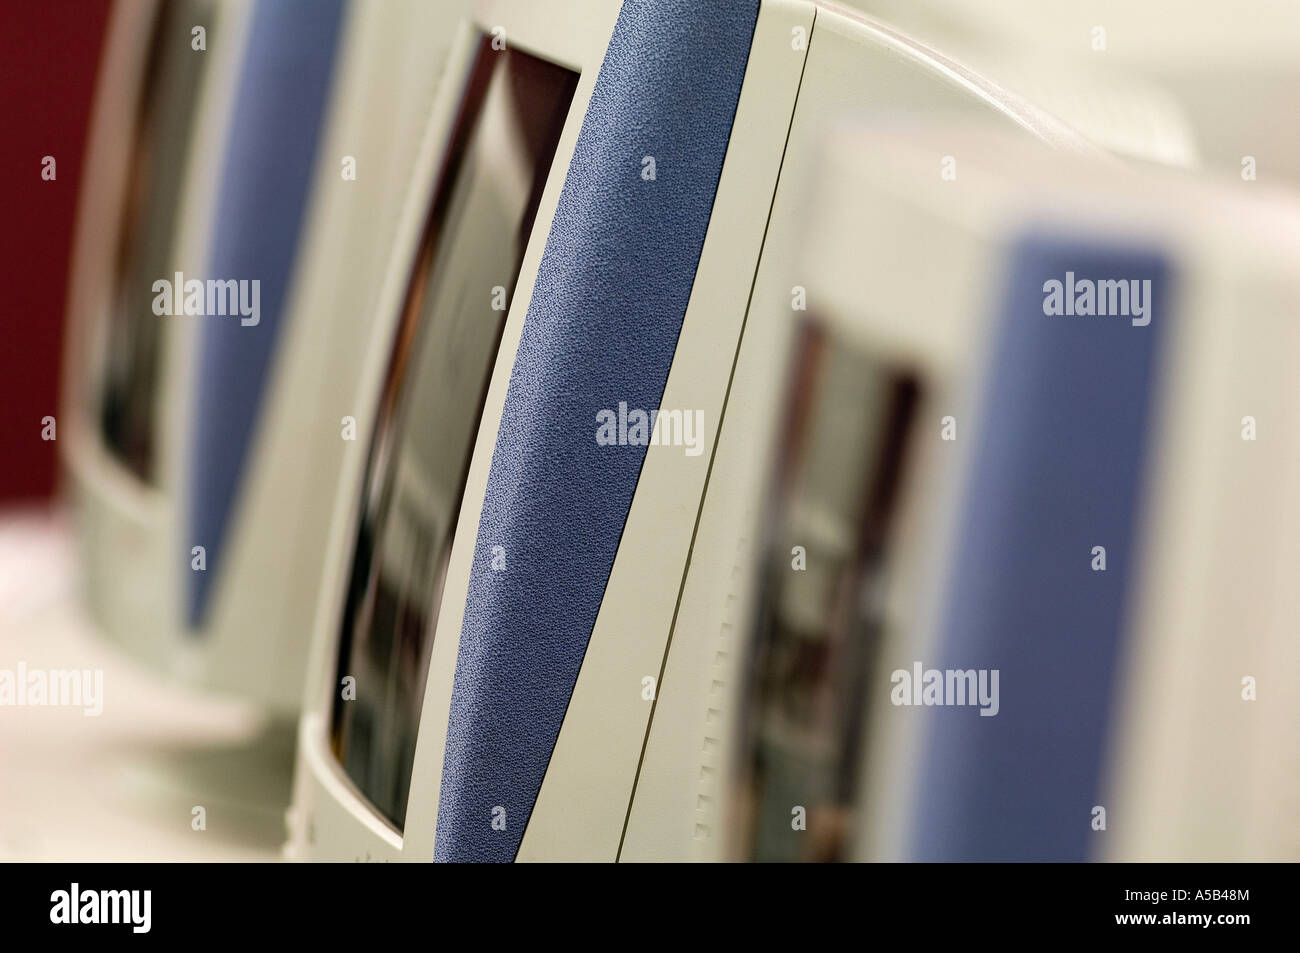 Grouping of monitors in computer lab. - Stock Image